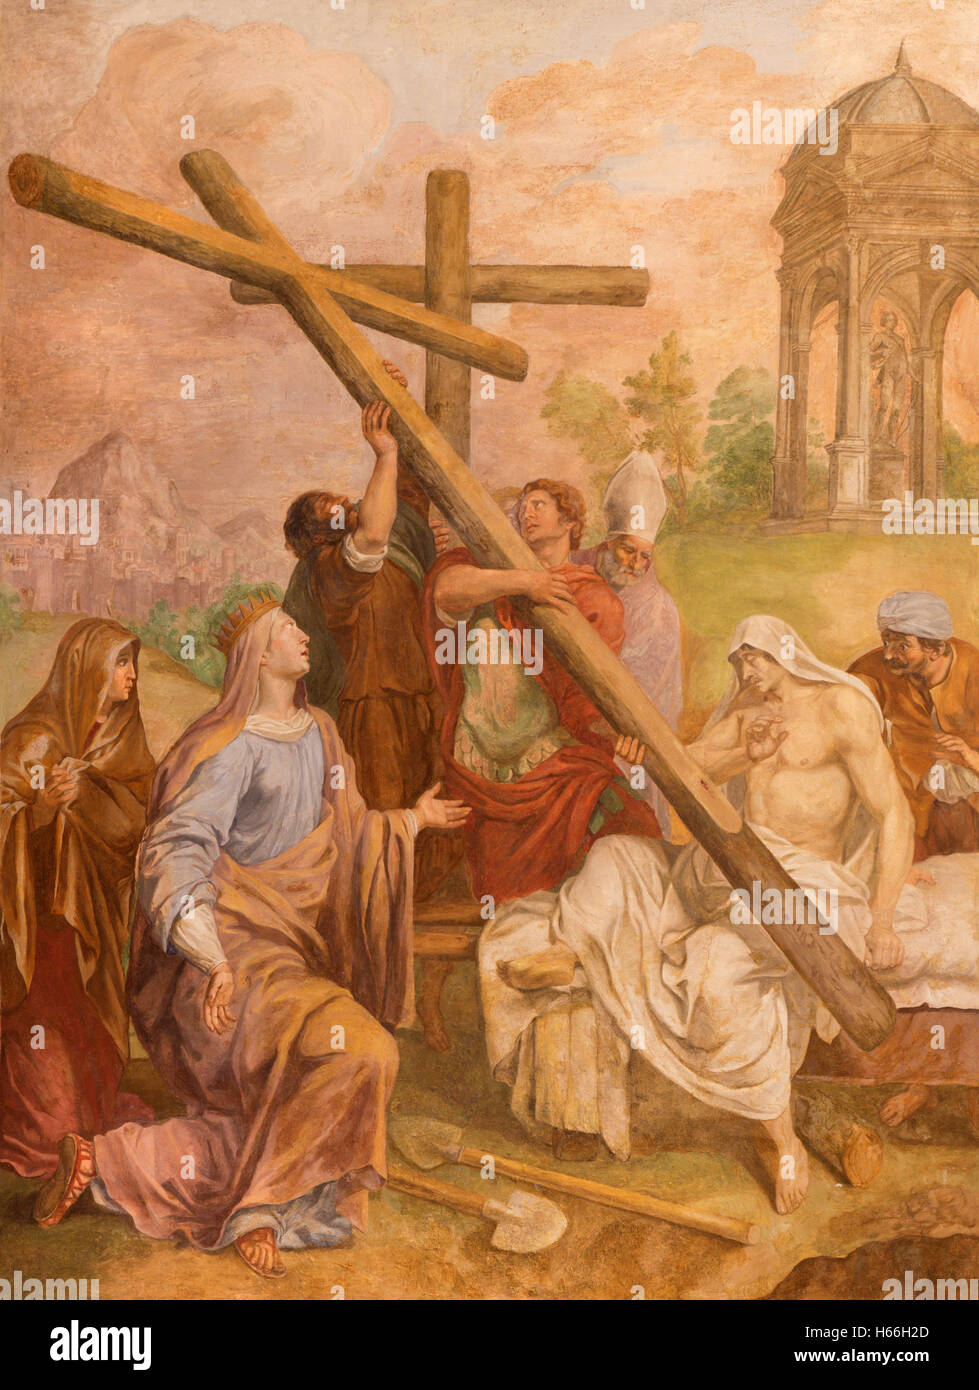 ROME, ITALY - MARCH 9, 2016: The fresco The St. Helen find the Holy Cross in church Basilica di Santa Maria del - Stock Image